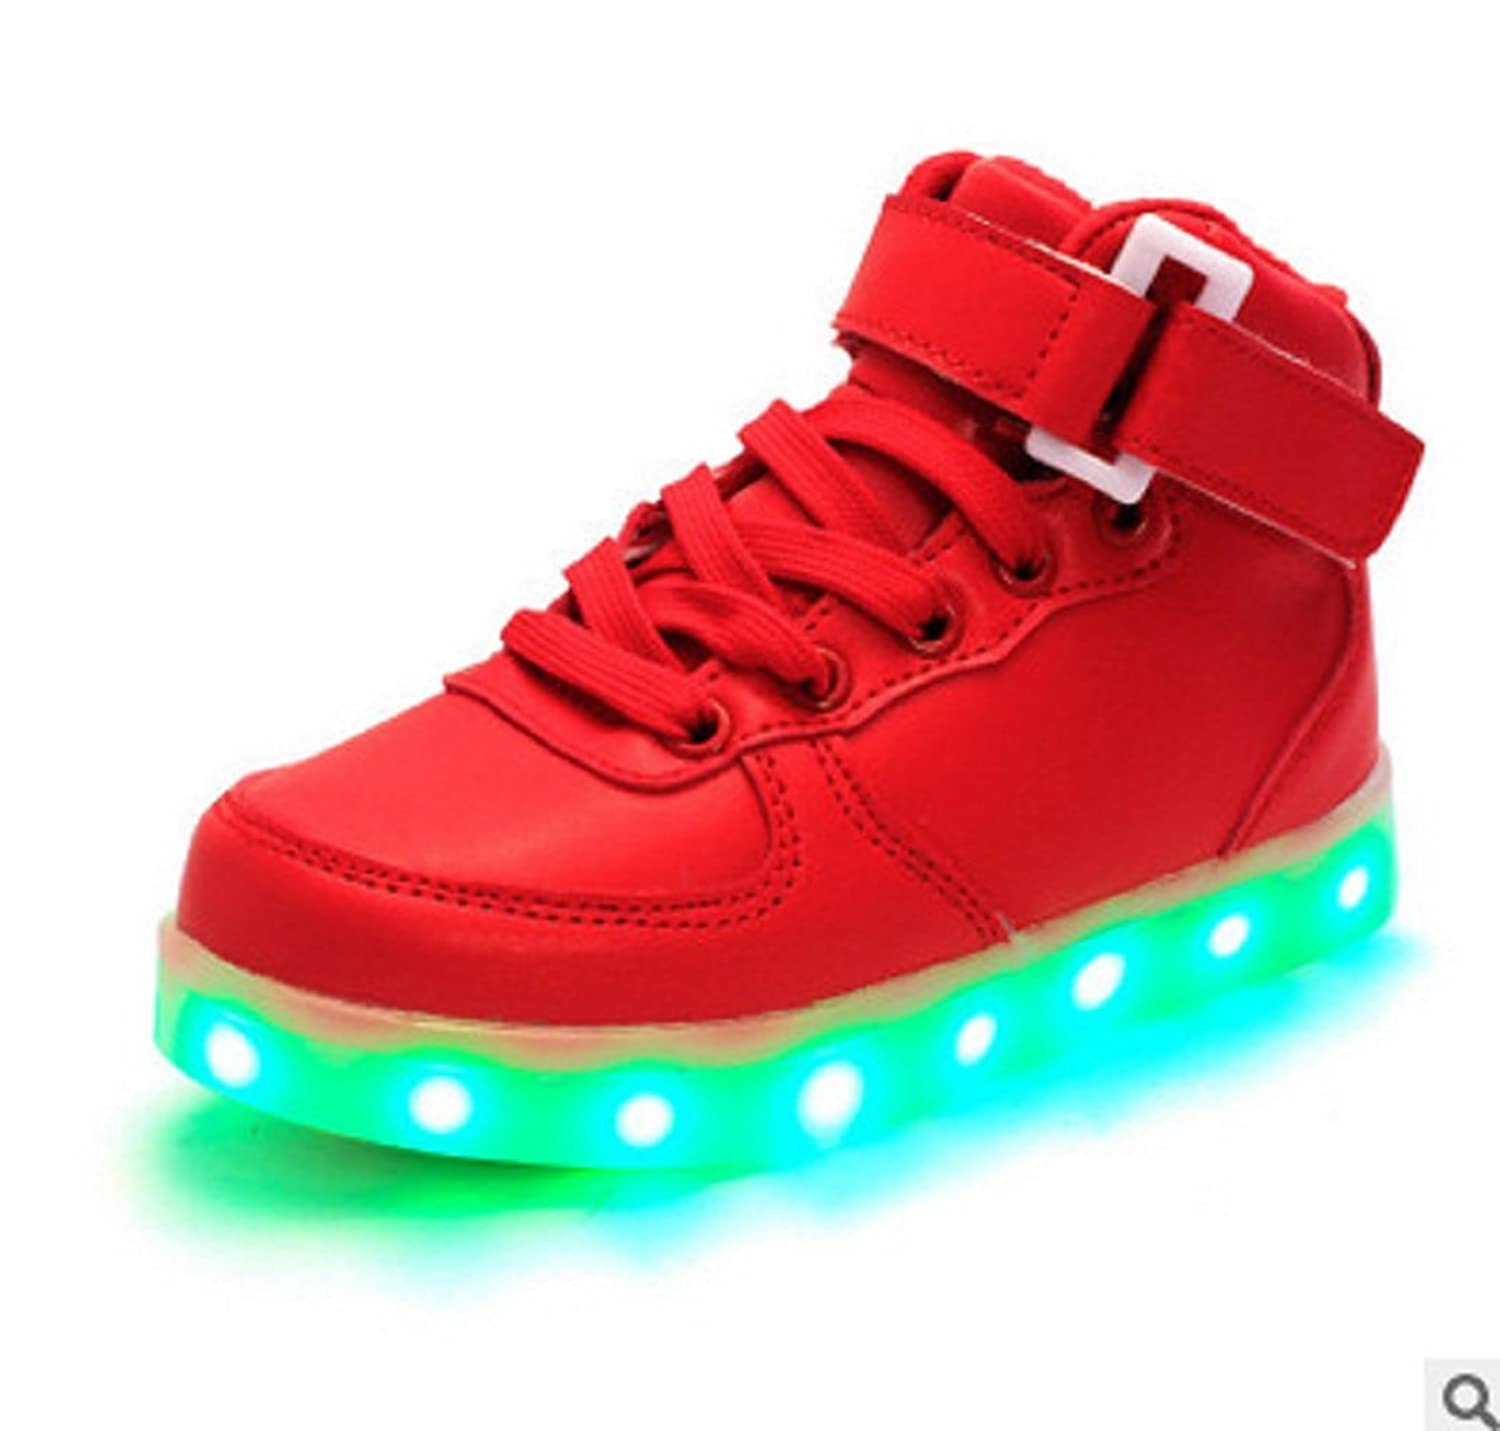 gold men for women boys buy high light led shoes up iled top girls products